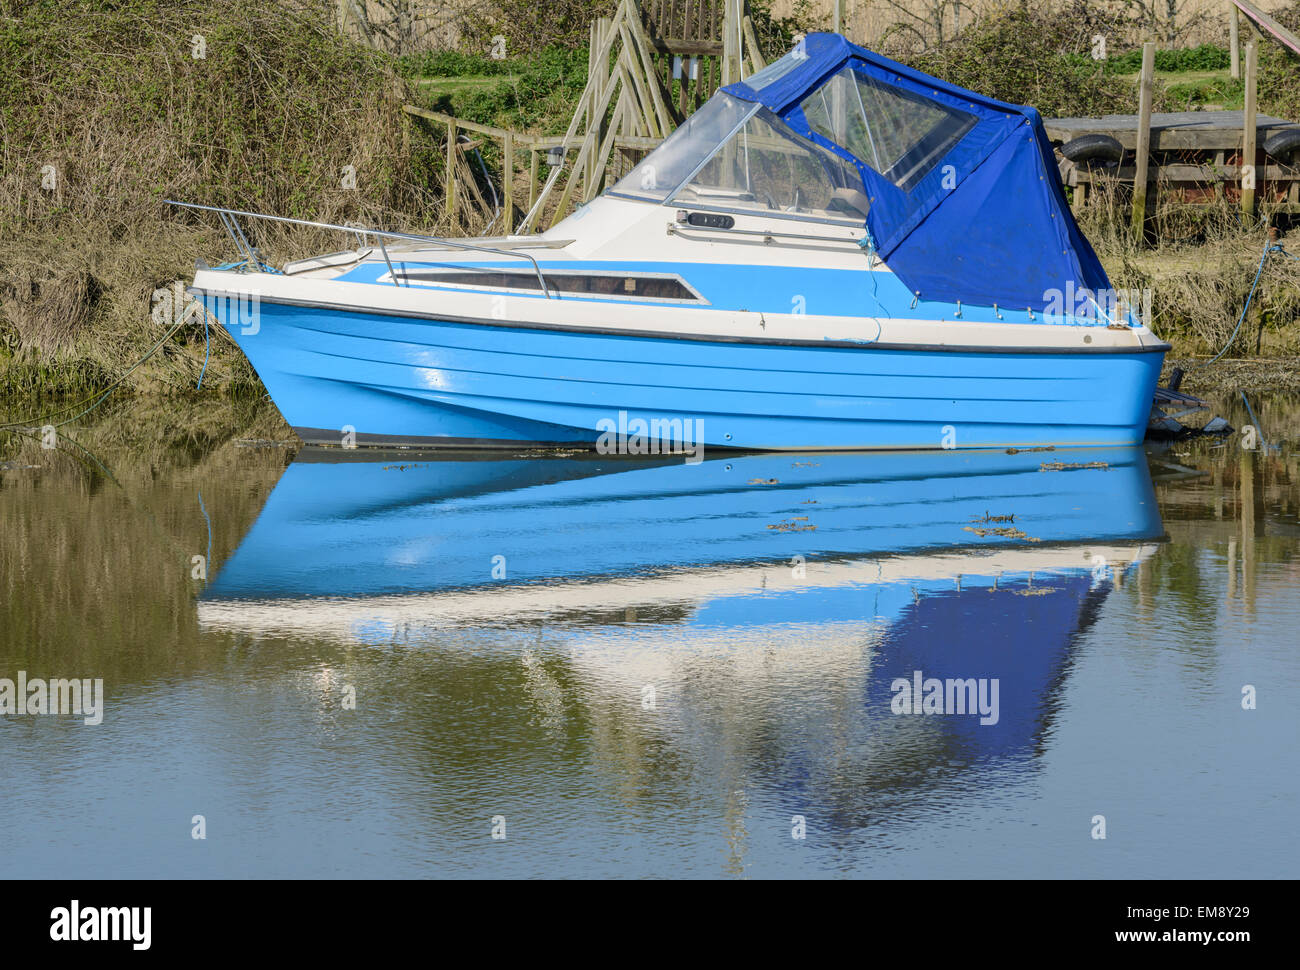 Small blue pleasure boat moored on a river with it's reflection in the water. - Stock Image